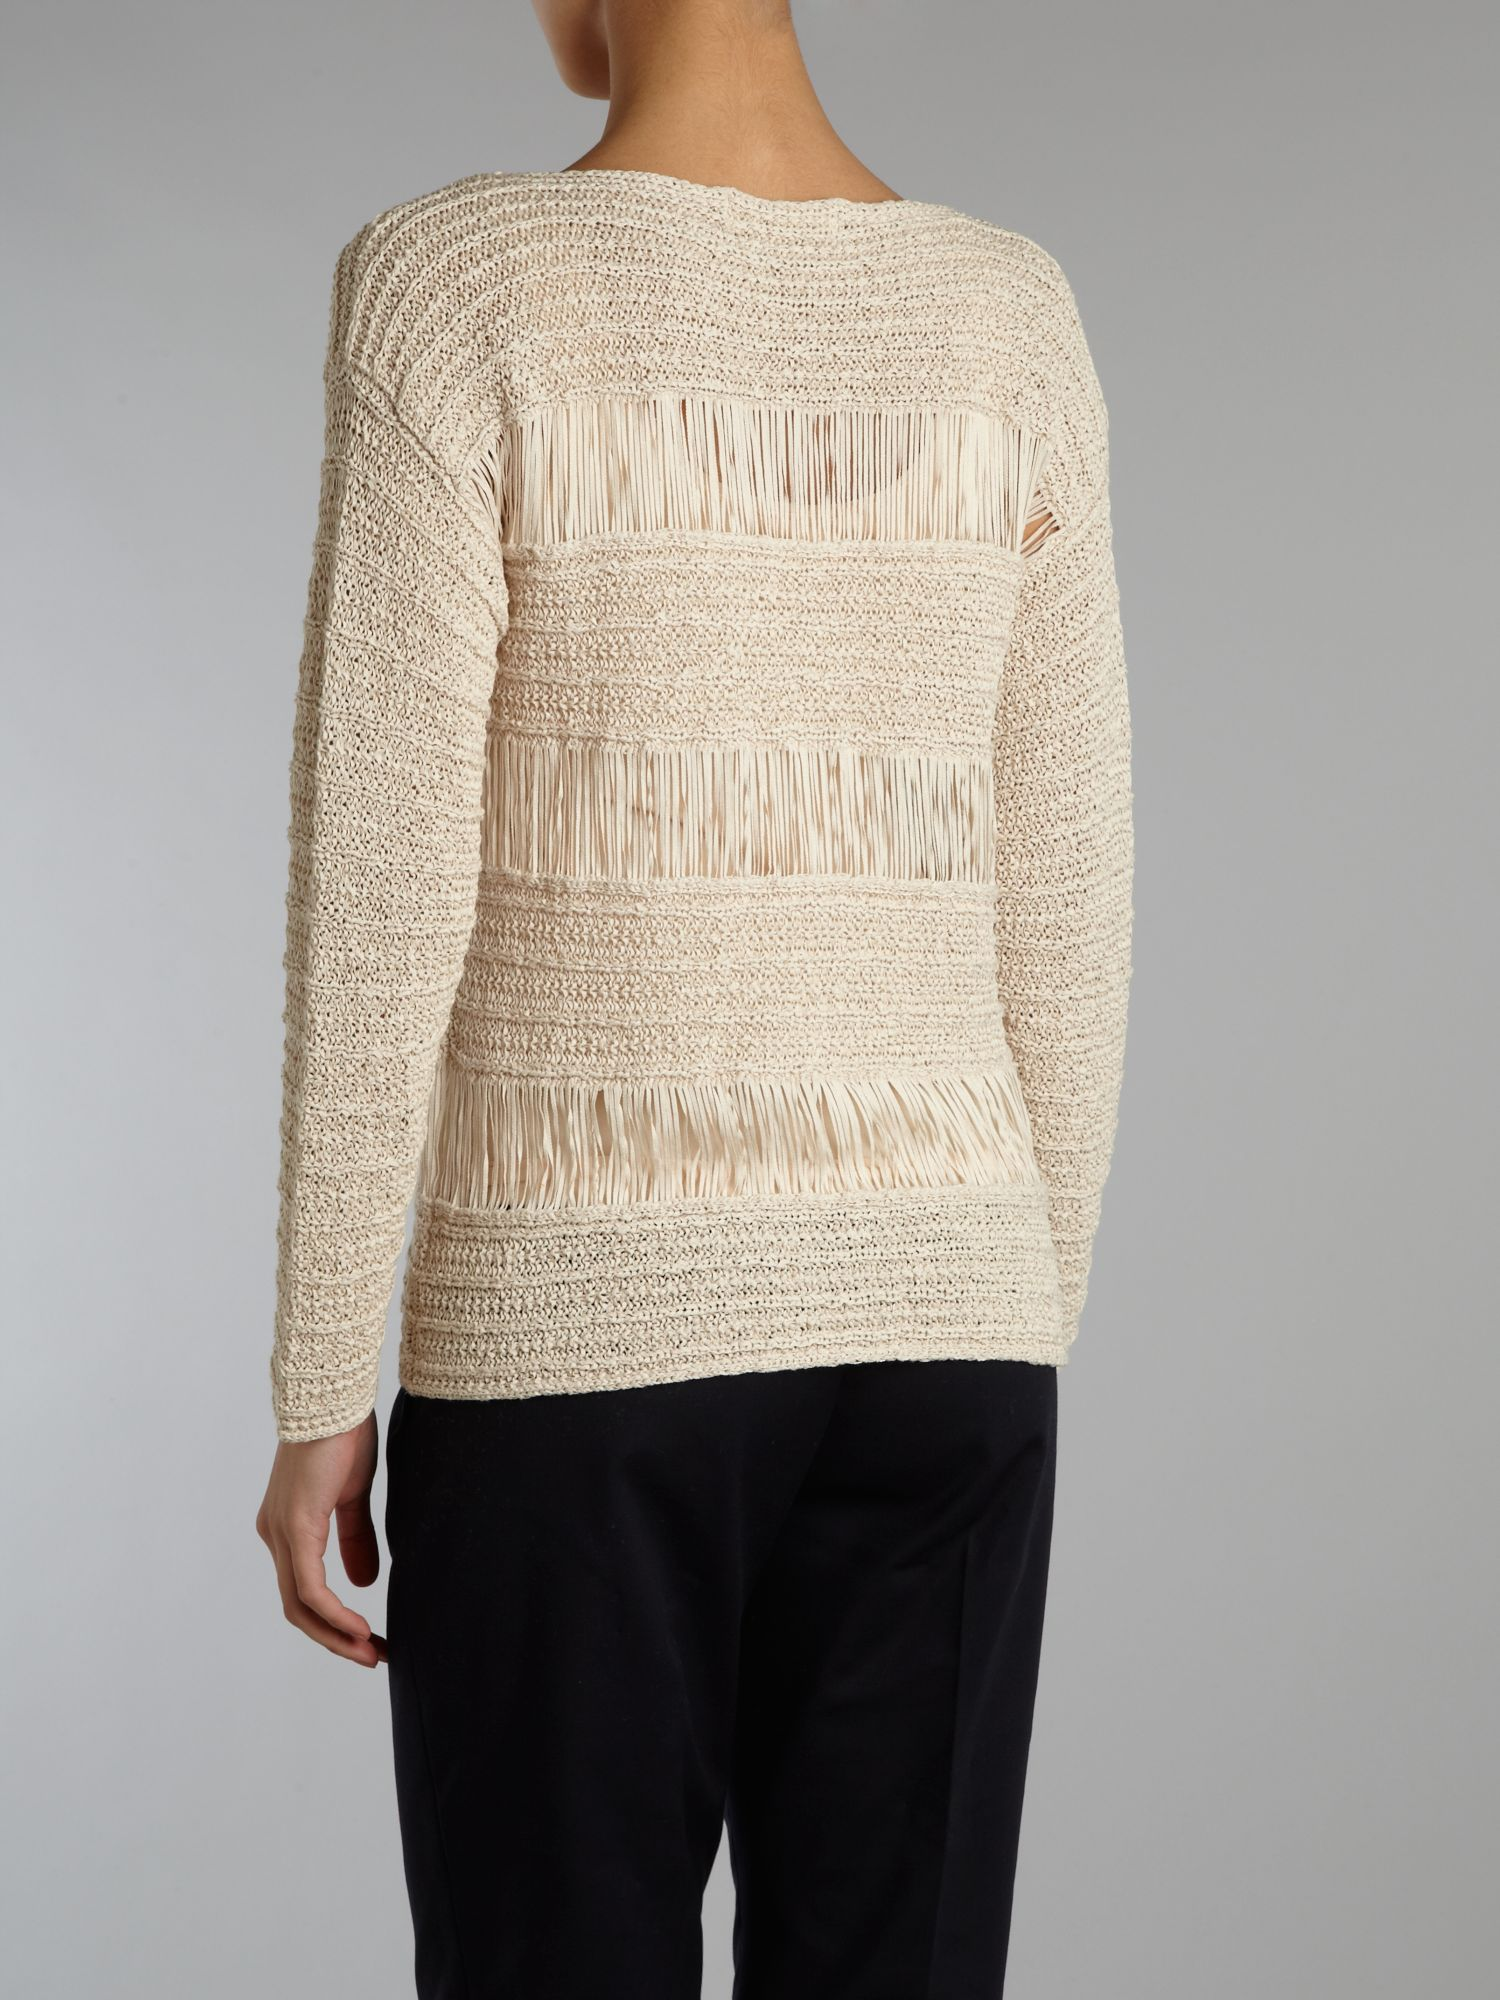 Long sleeved loose knit top